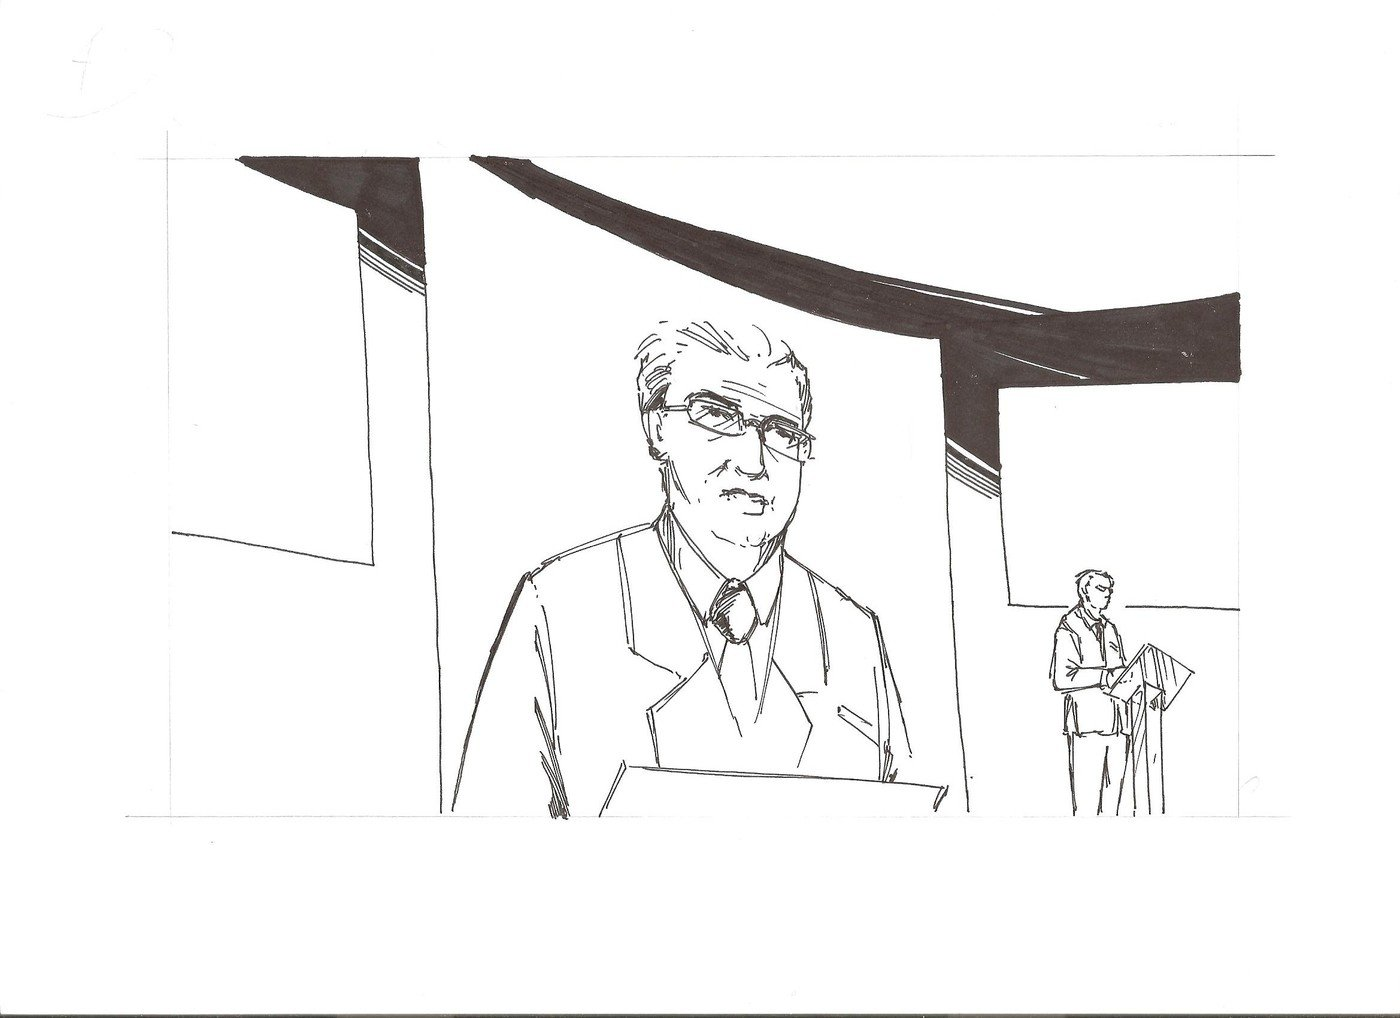 Sketch concept, Storyboard & Comic illustration by Albert